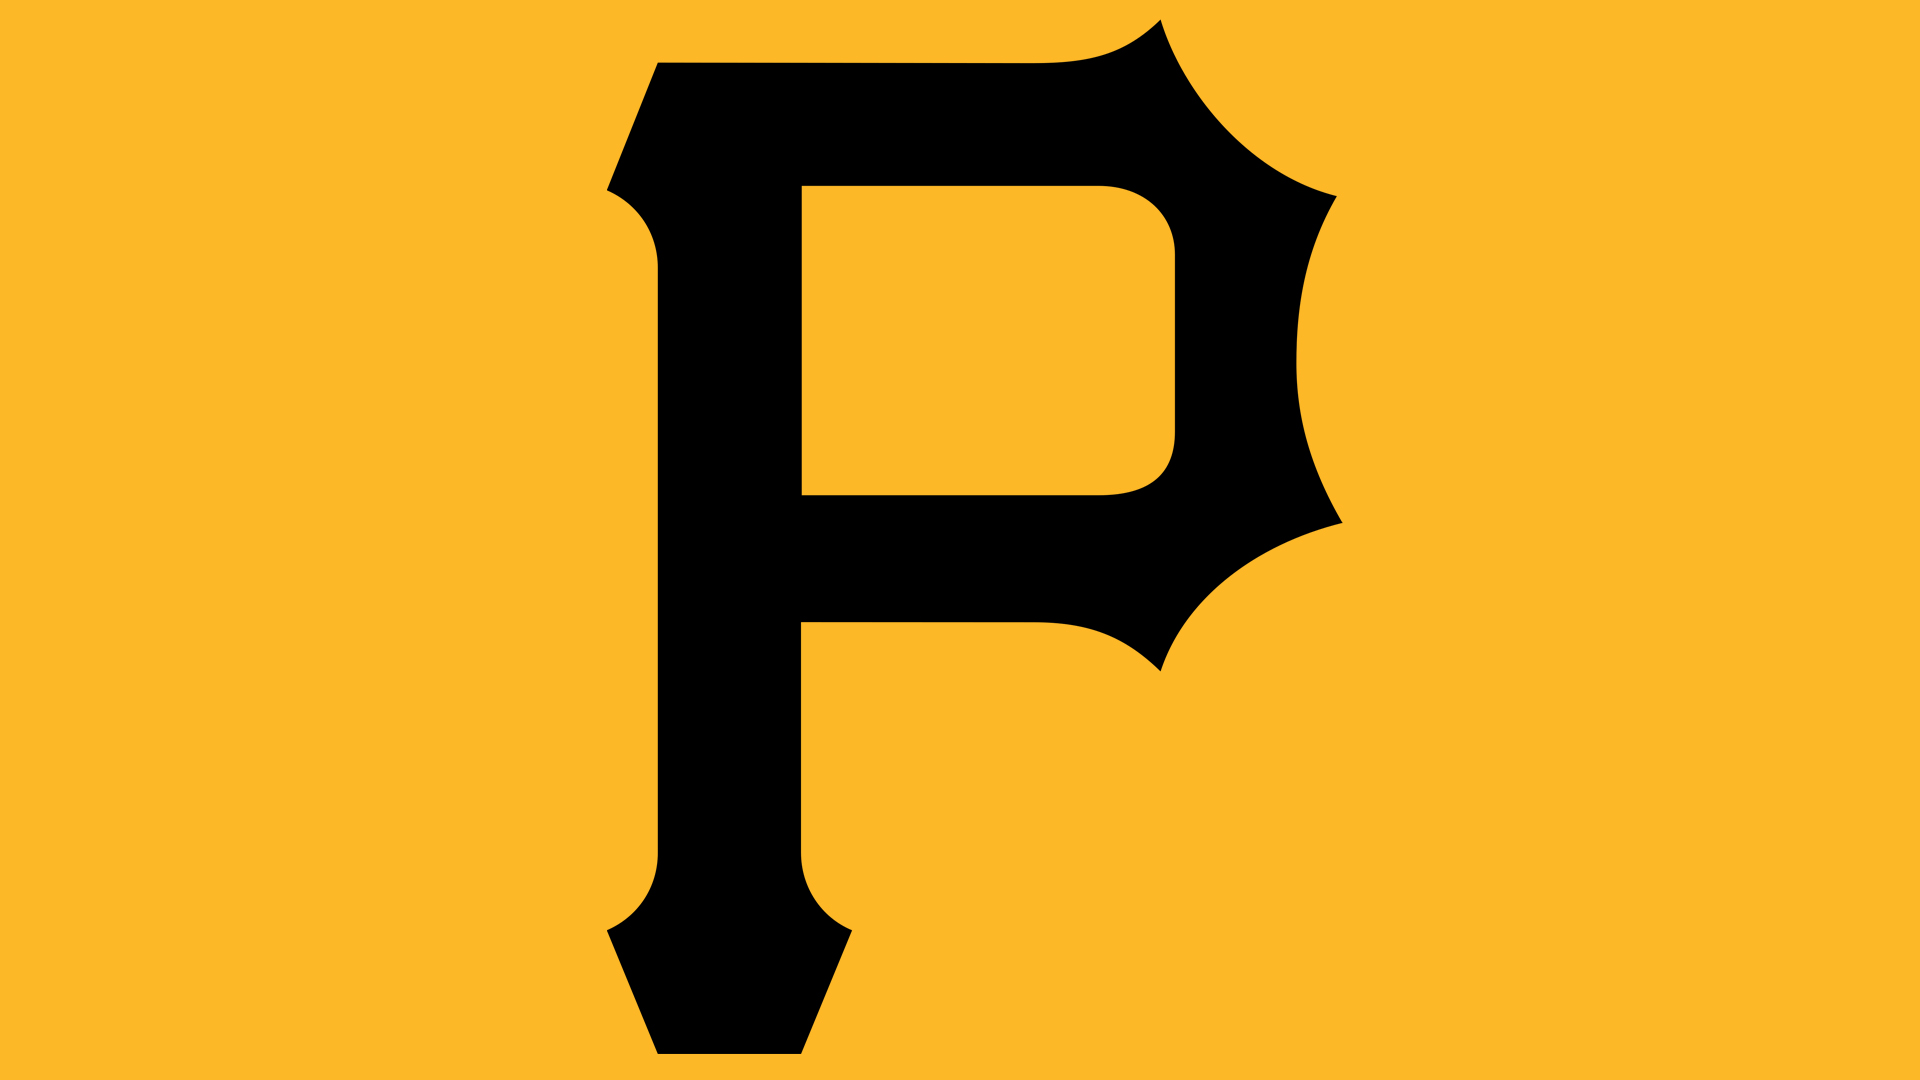 Meaning Pittsburgh Pirates logo and symbol.